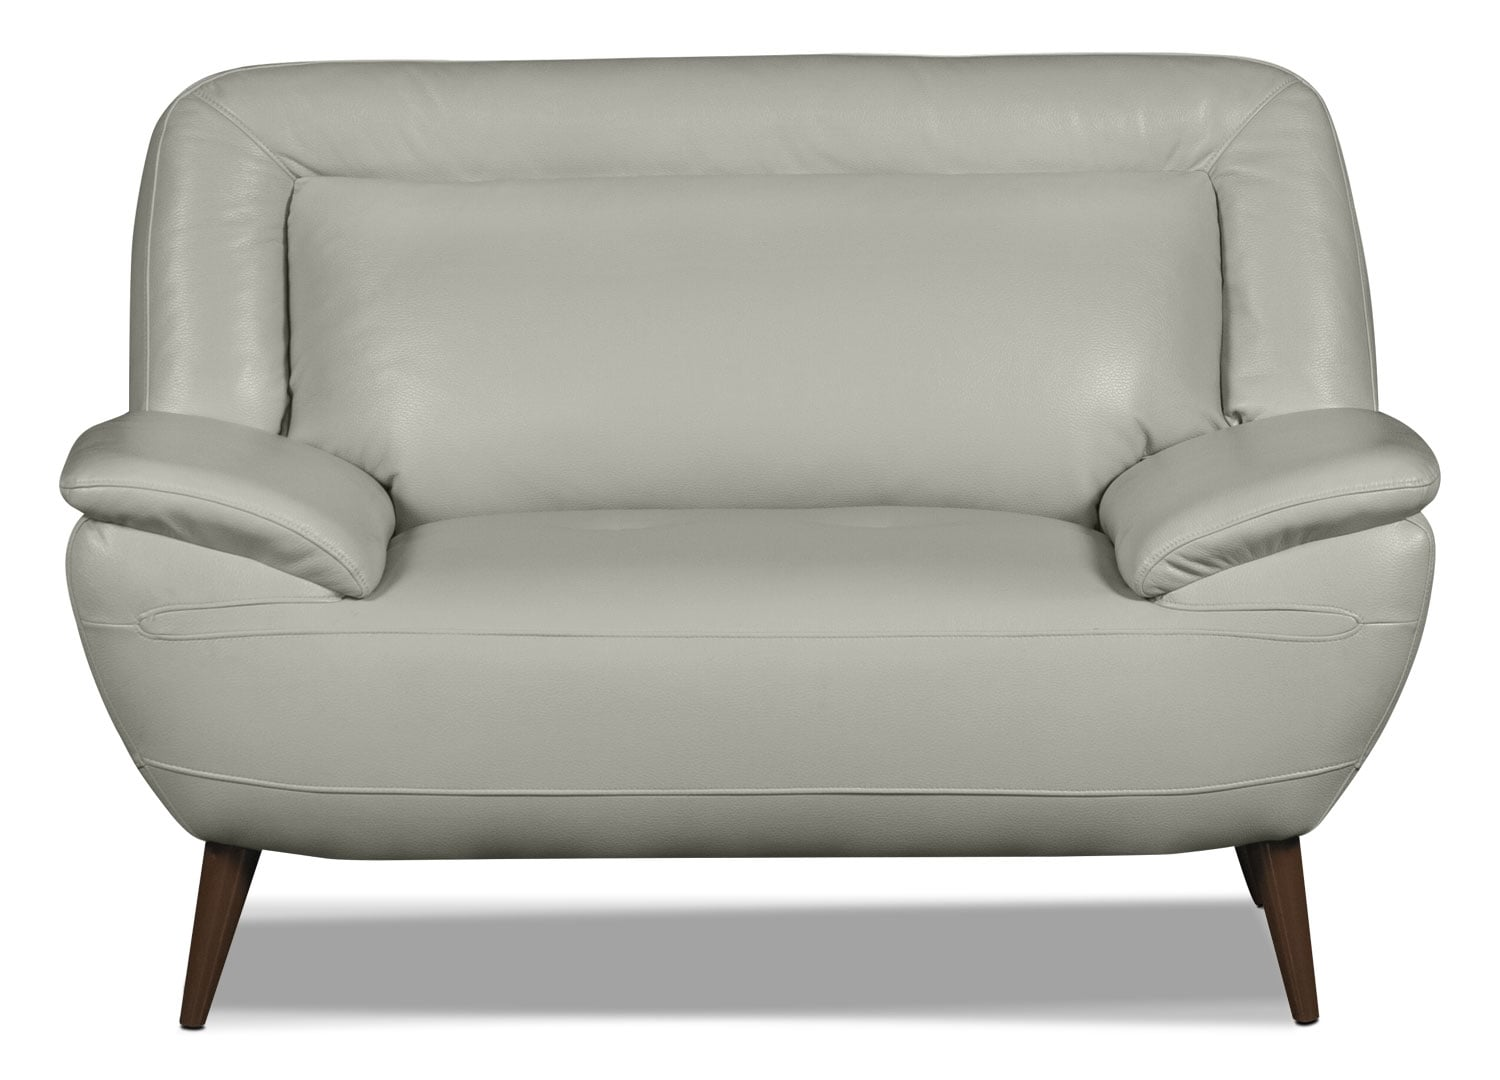 Roxy Leather-Look Fabric Chair-and-a-Half - Beige